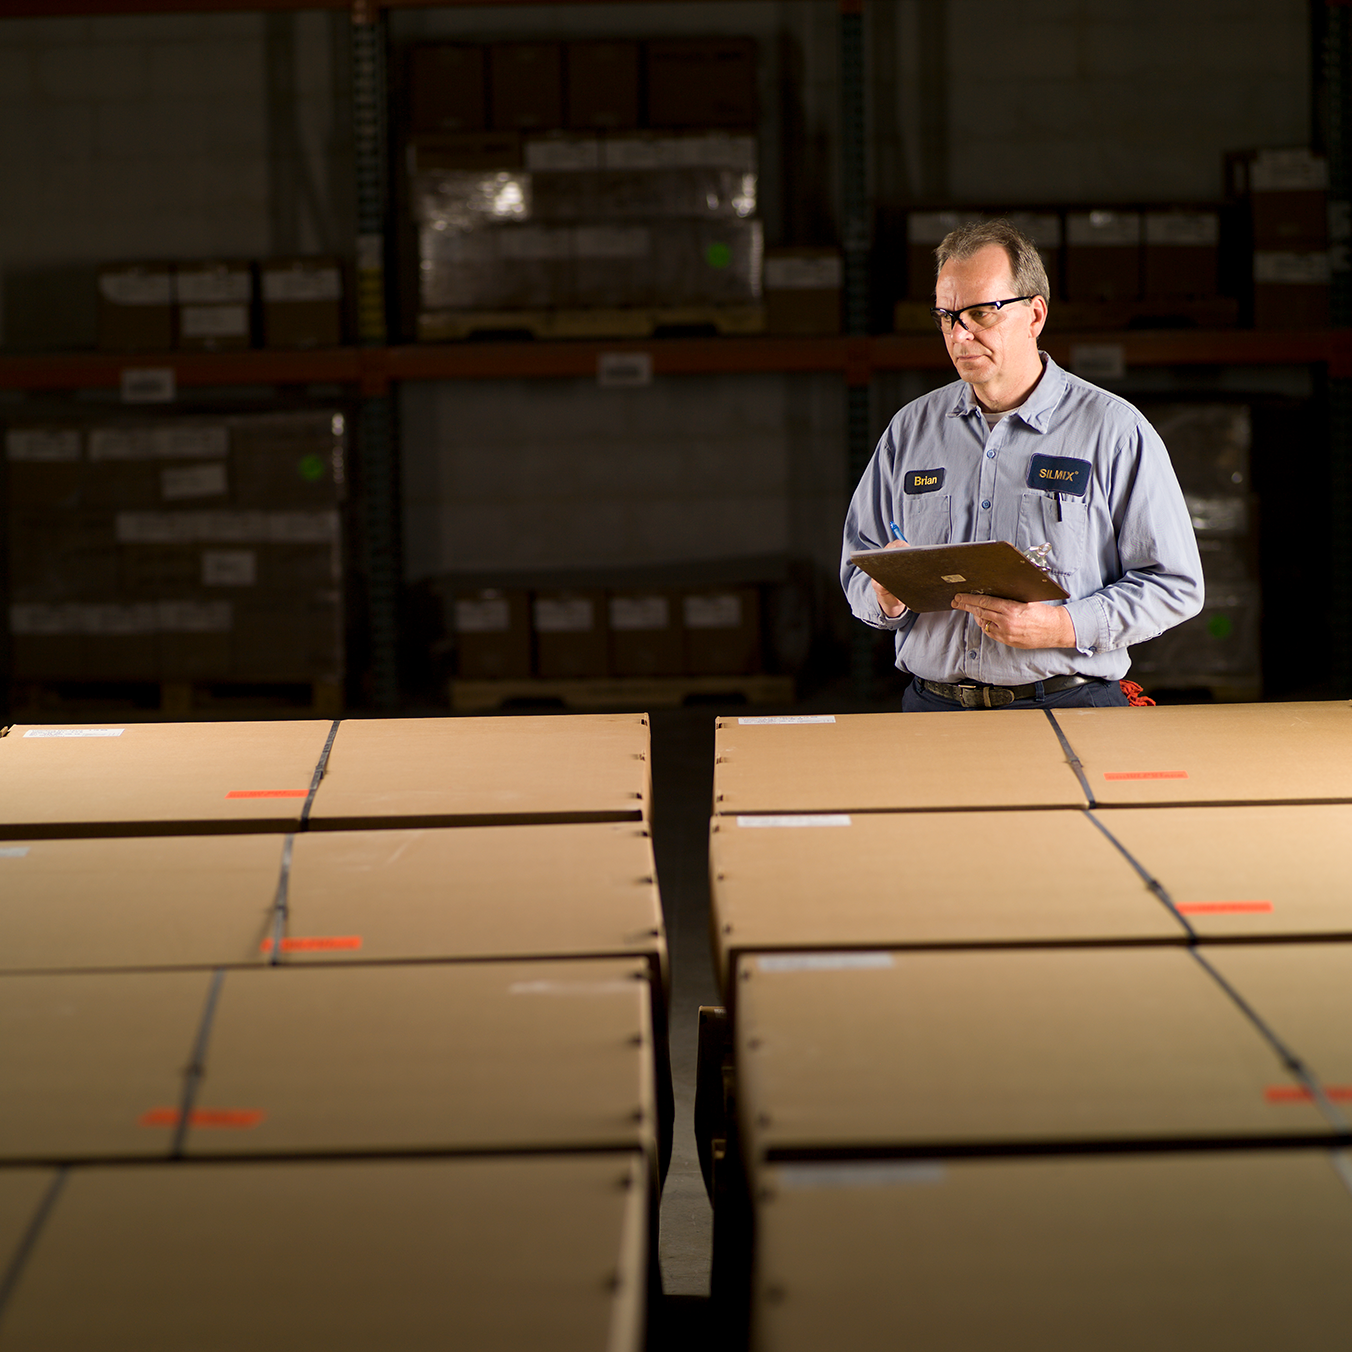 man reviewing delivery boxes